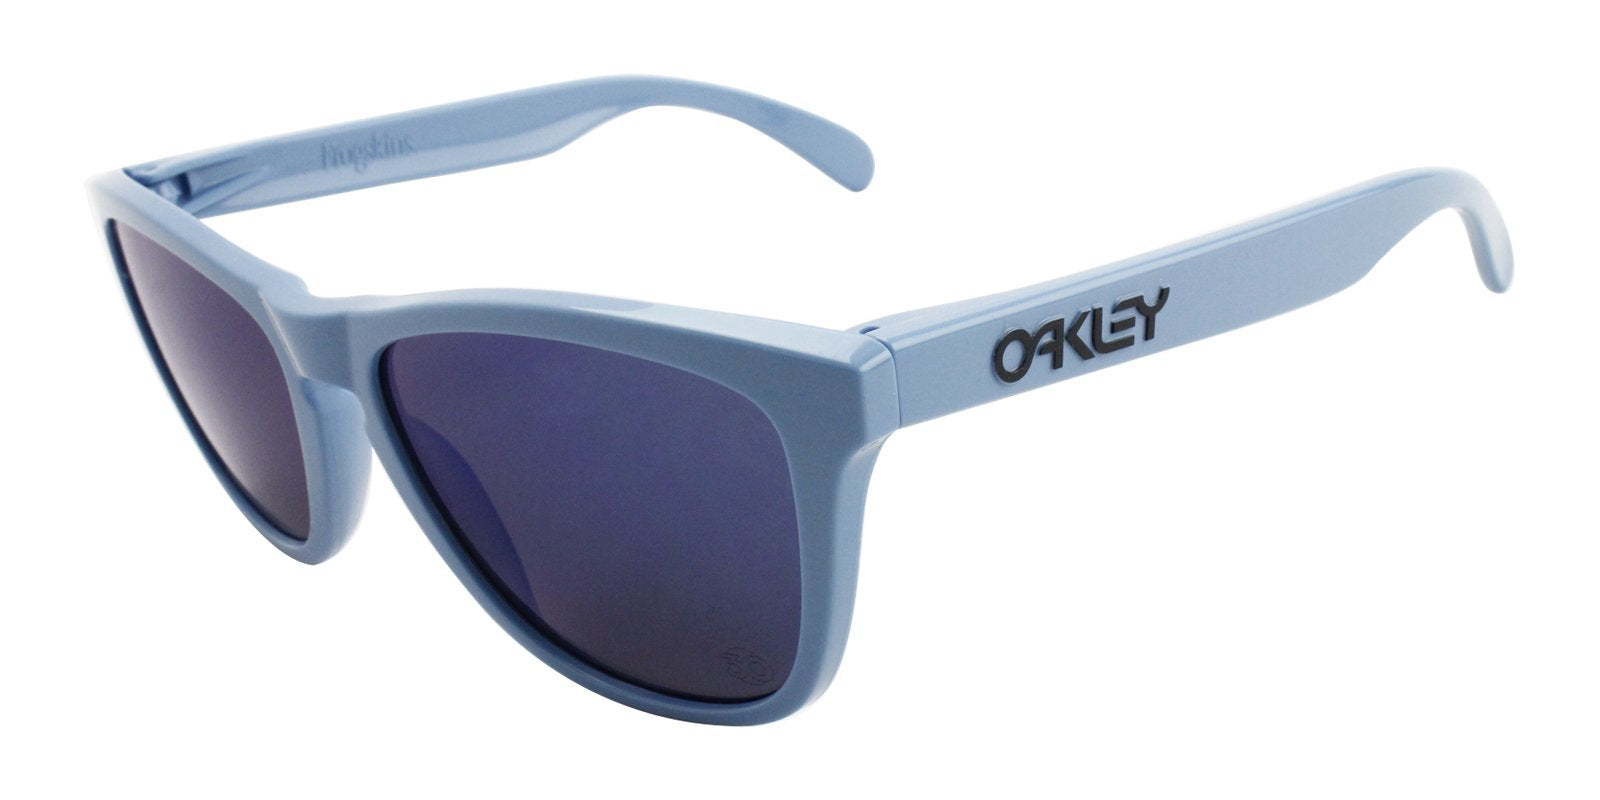 Oakley - Frogskins Blue/Blue Oval Women Sunglasses - 55mm-Sunglasses-Designer Eyes